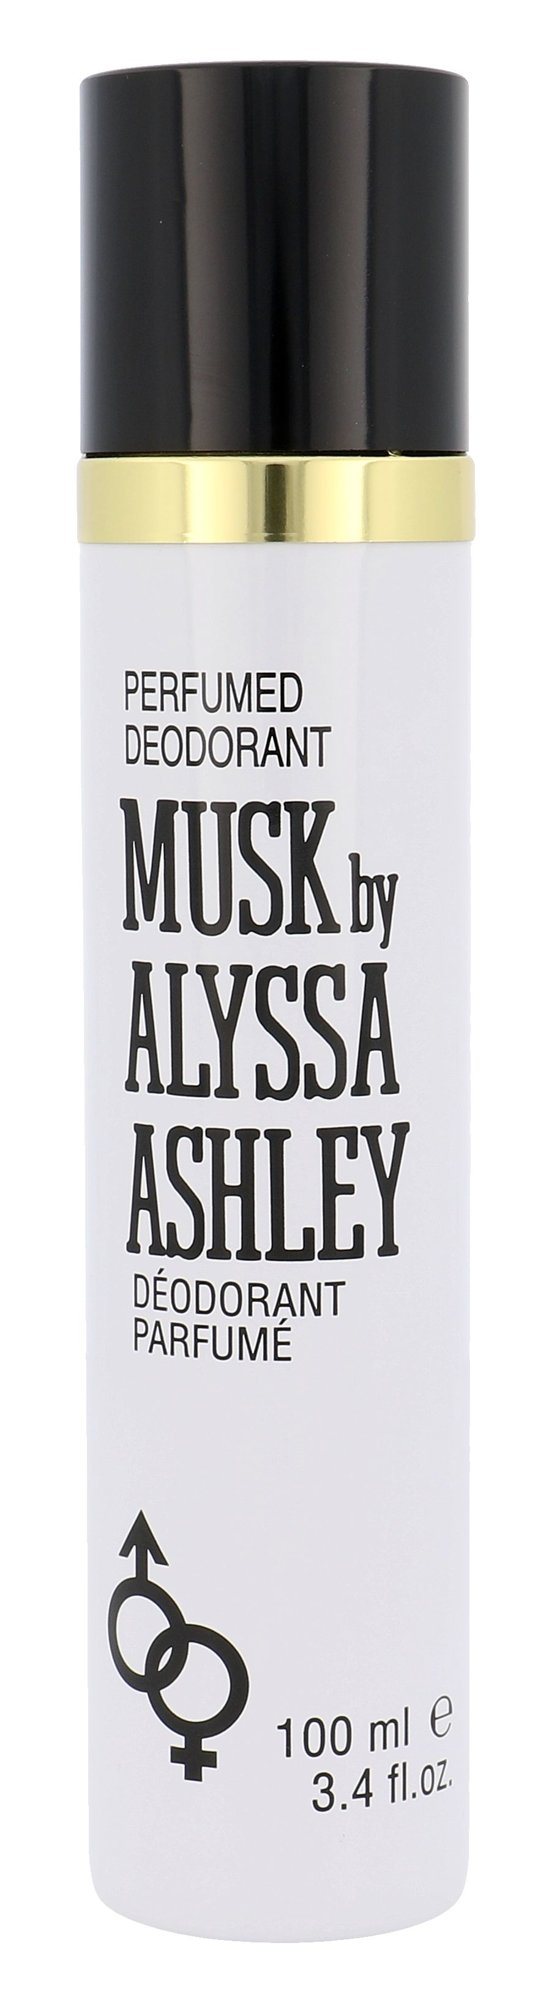 Alyssa Ashley Musk Deodorant 100ml